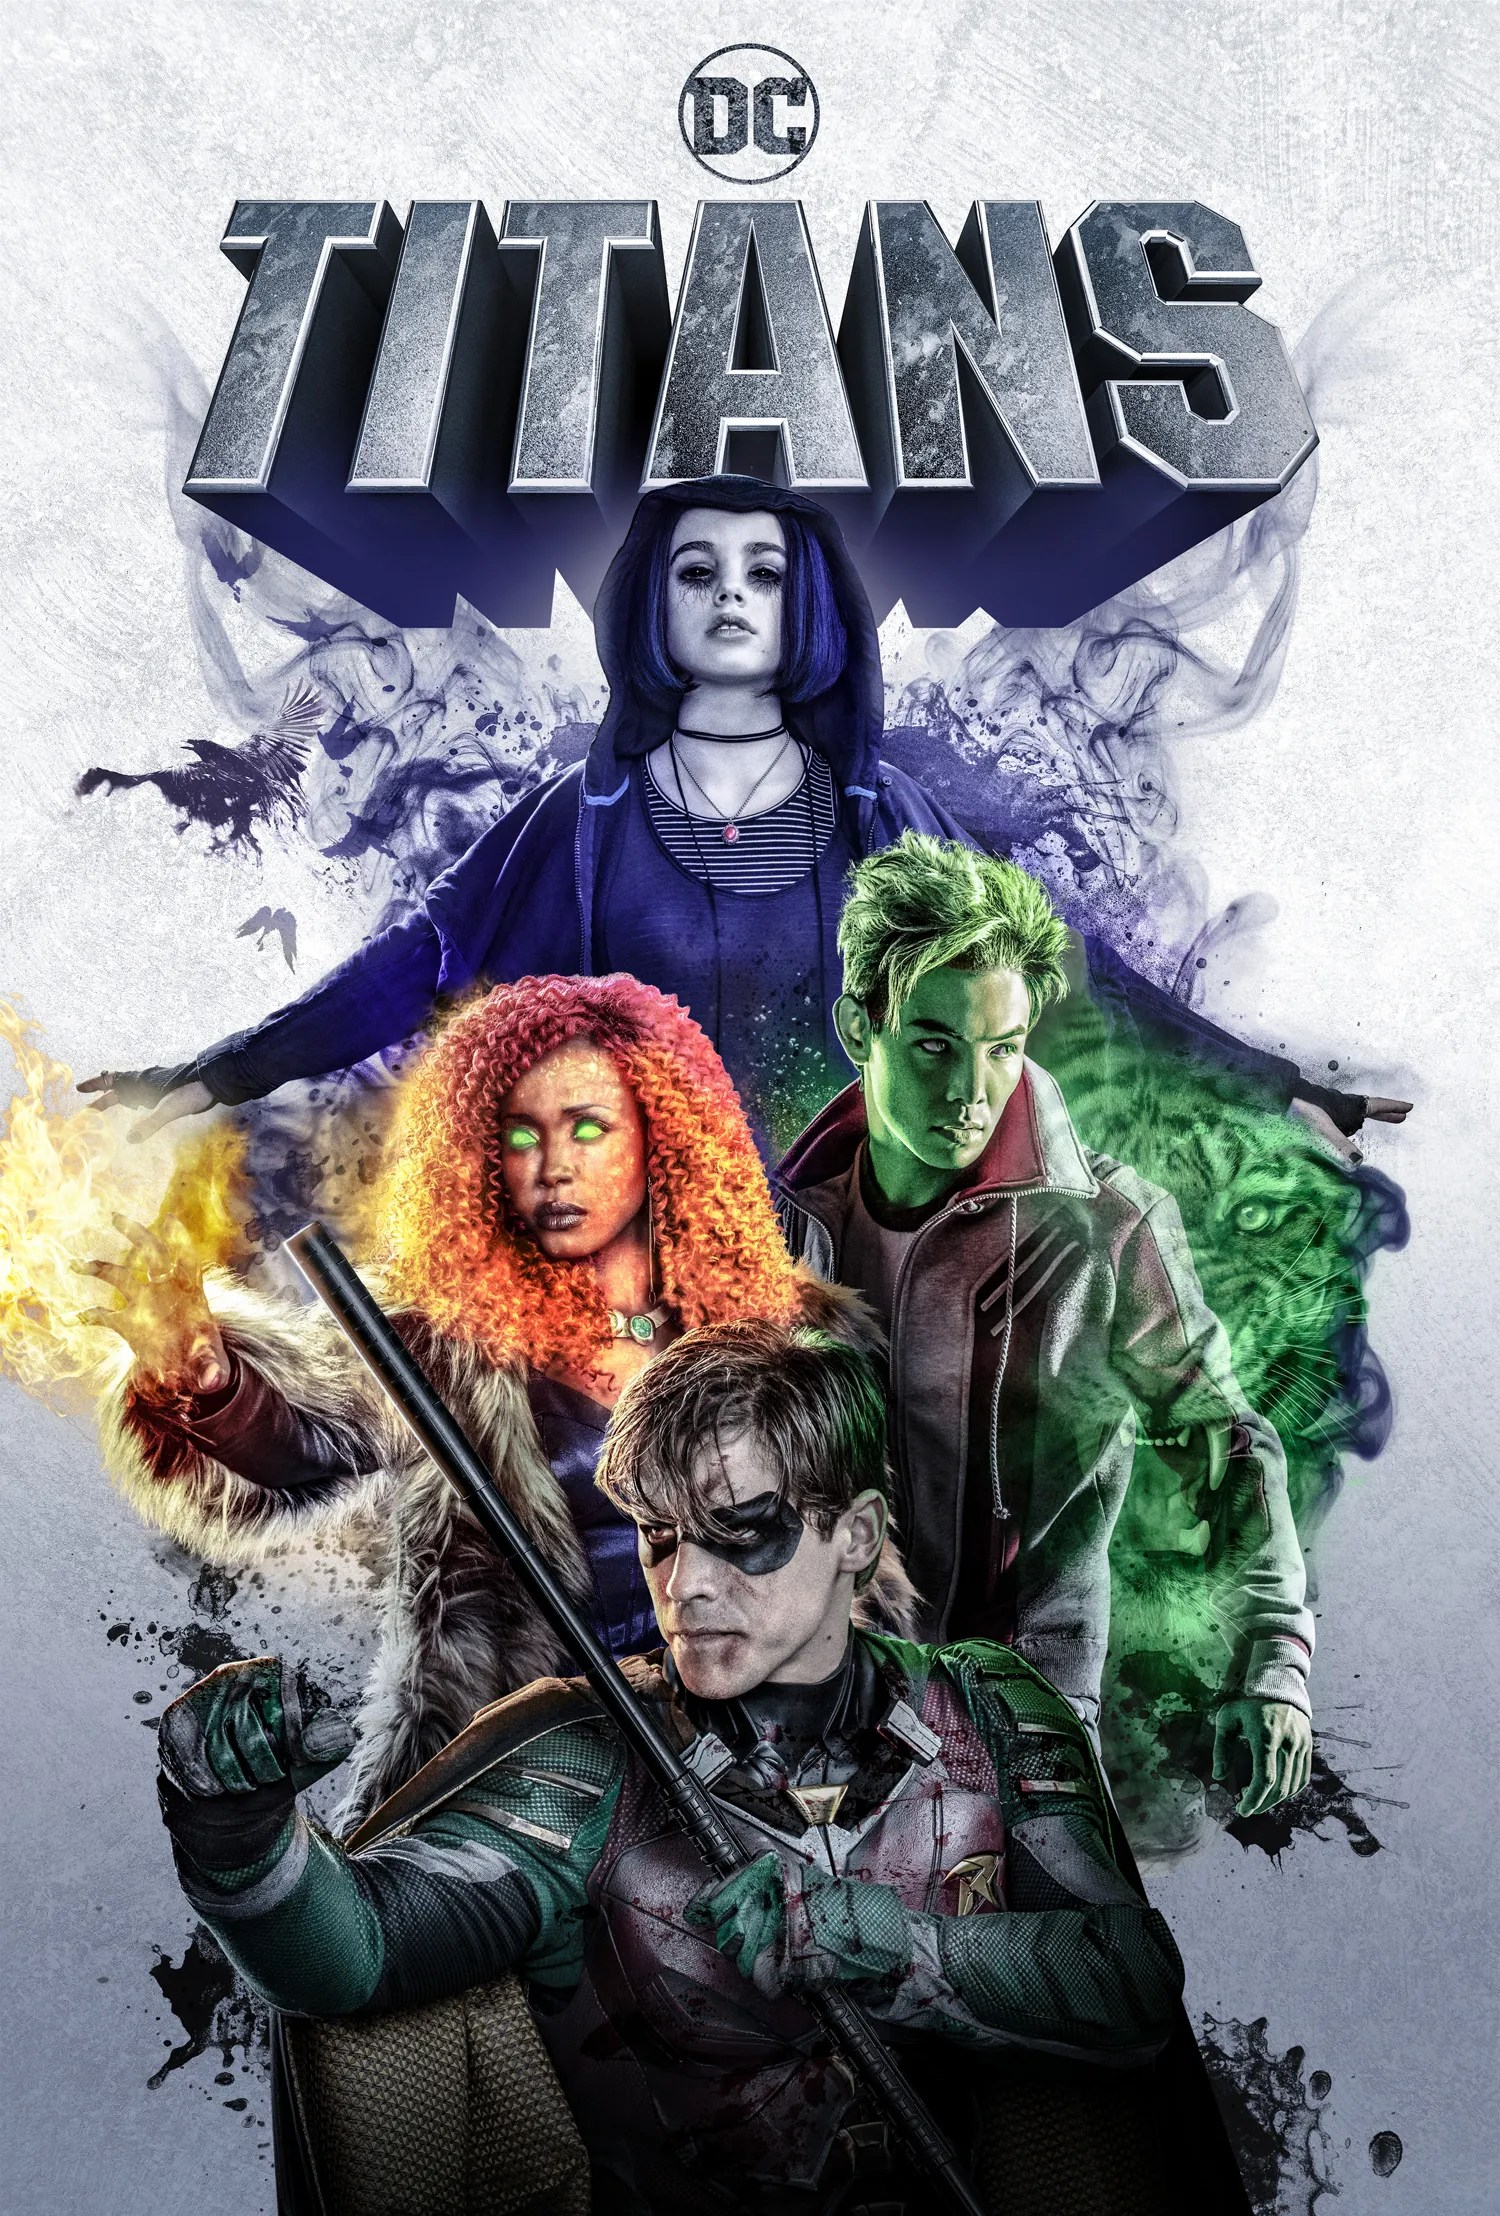 New Titans Poster Brings The DC Universe Gang Together